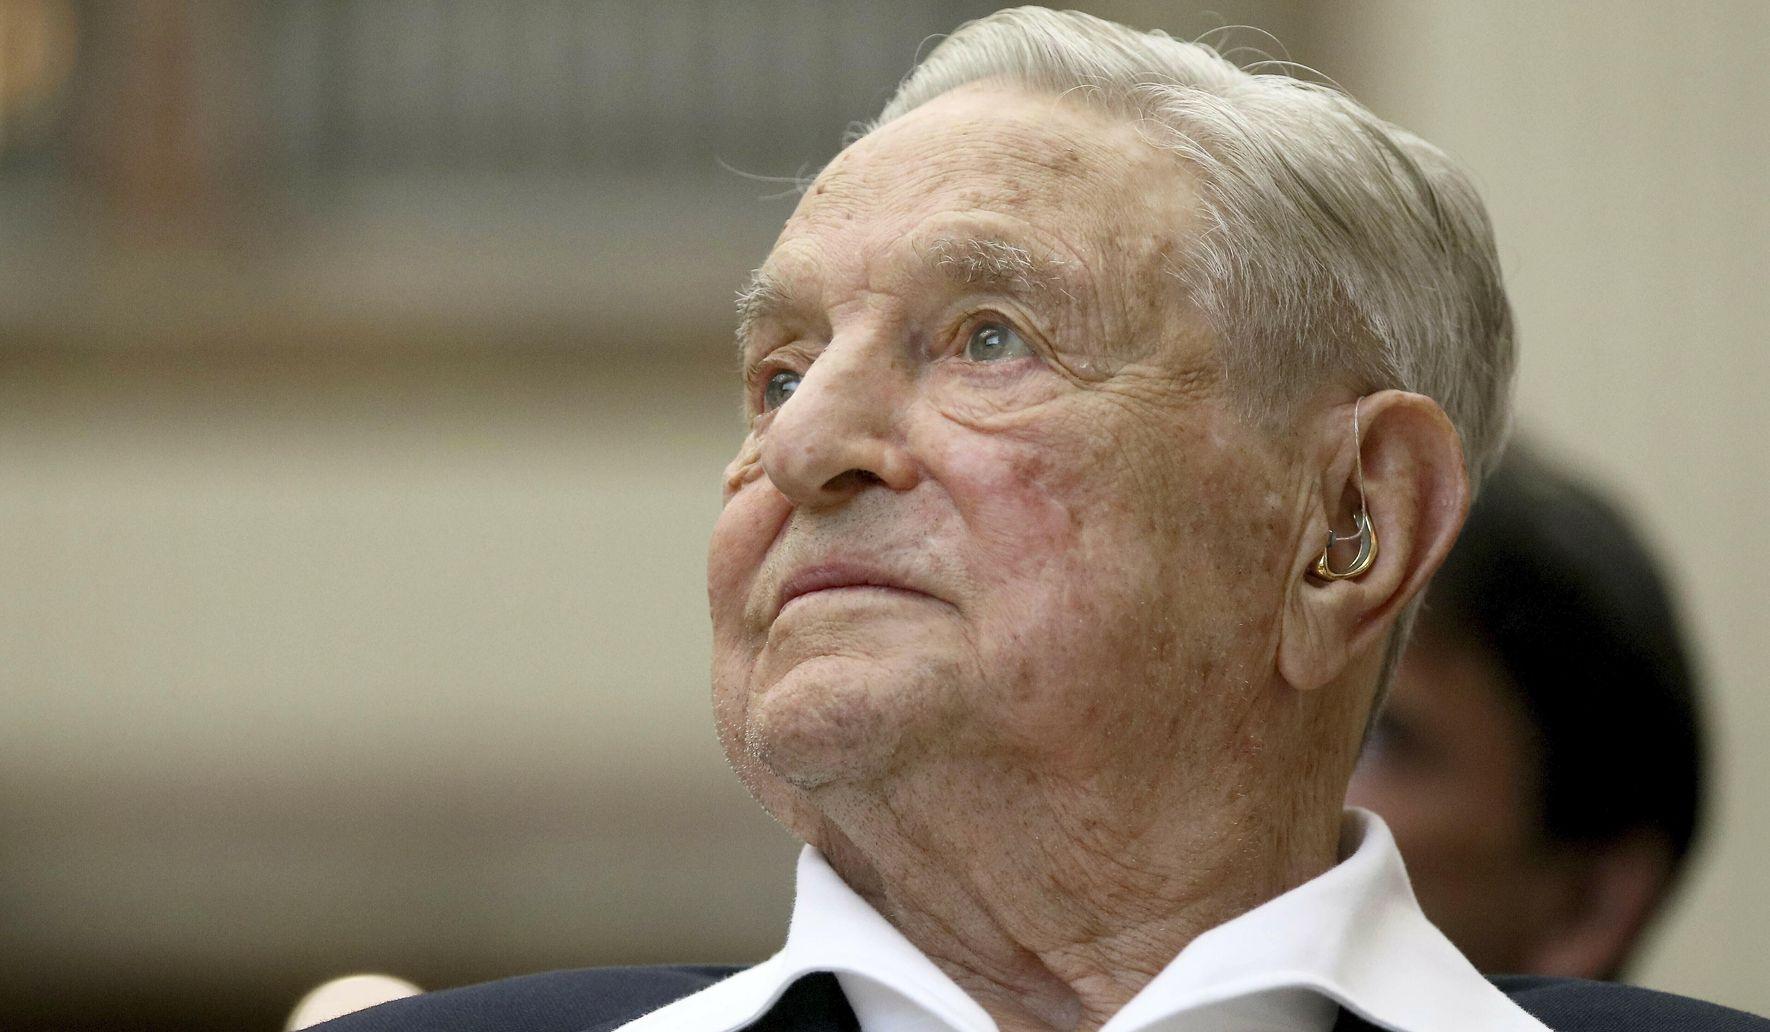 George Soros, 89, is still on a quest to destroy America